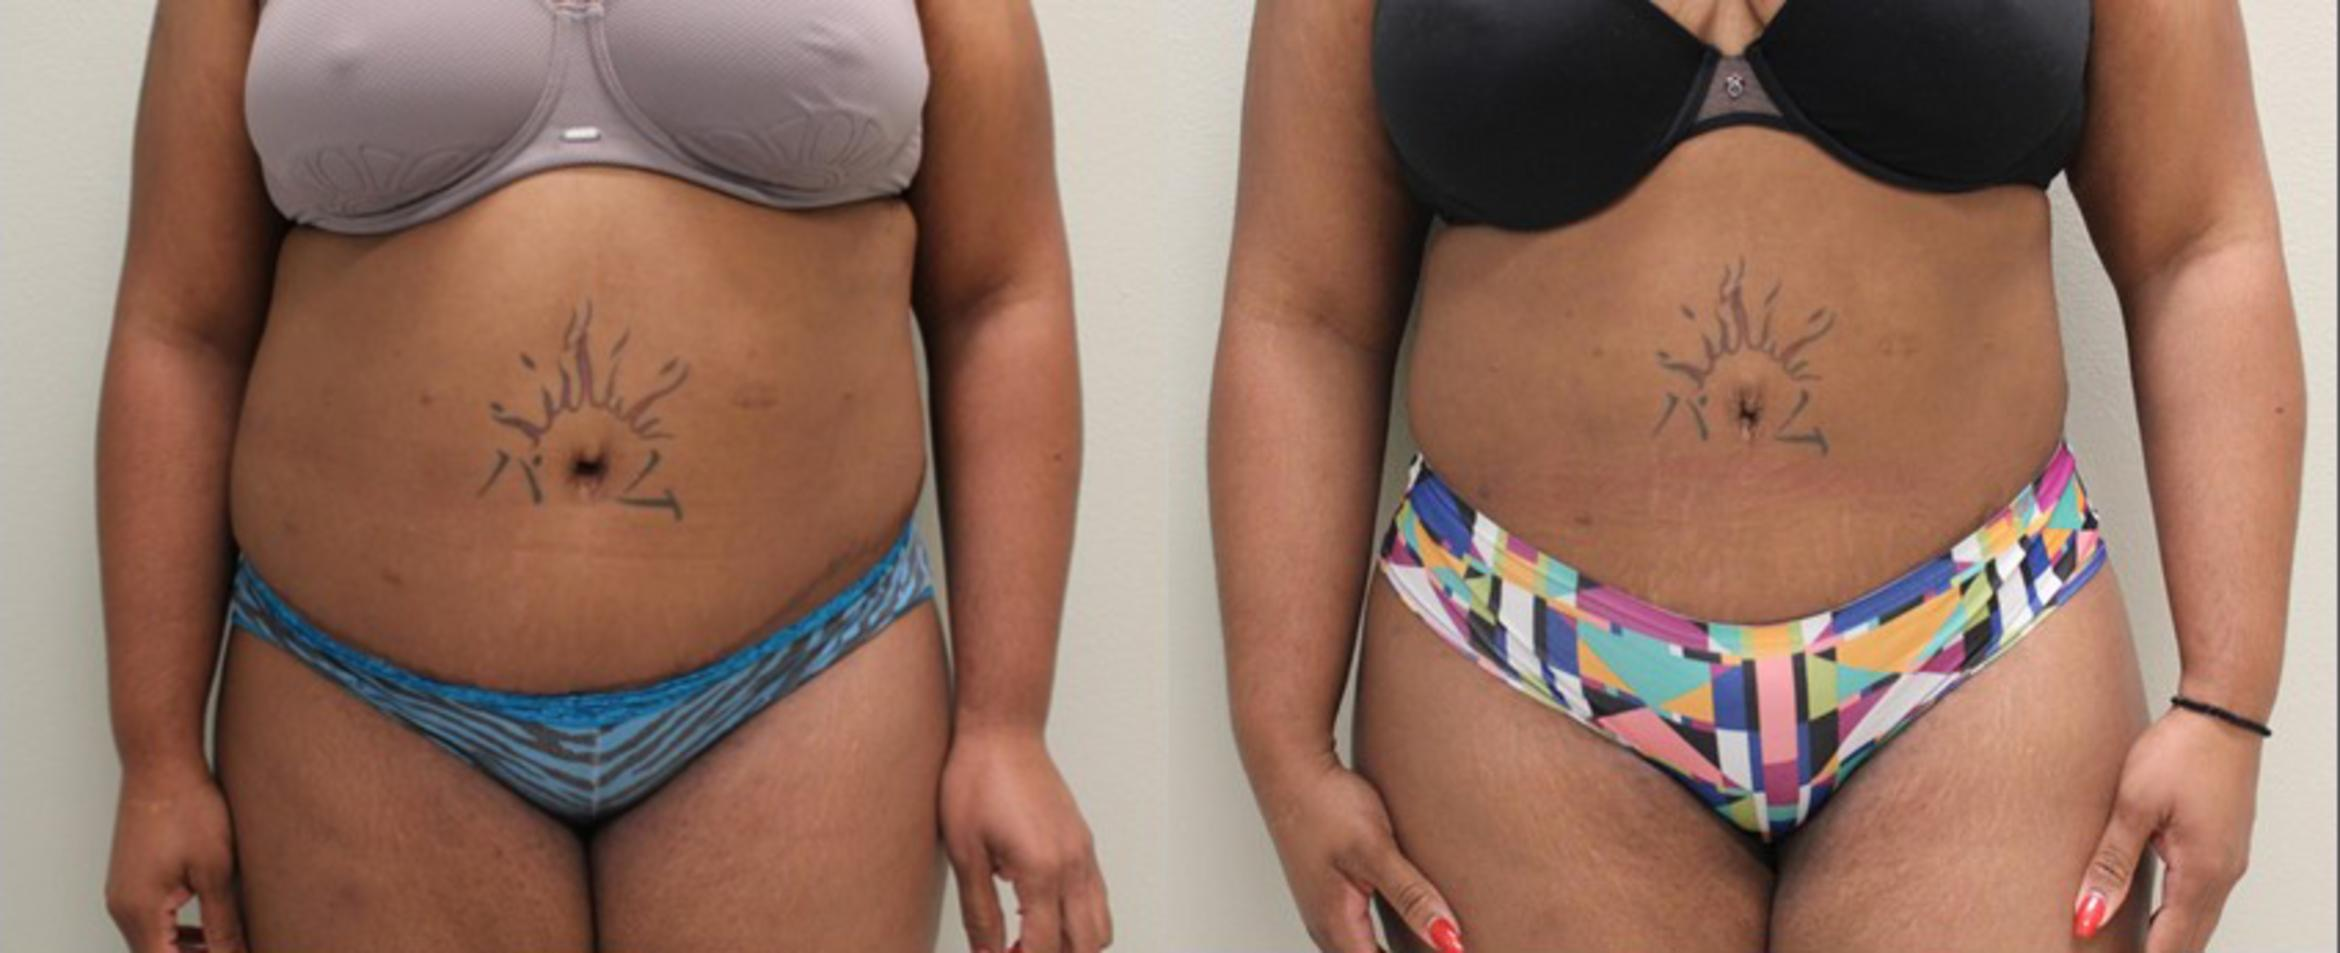 Liposuction Before & After Photo | Baton Rouge, Louisiana | Weiler Plastic Surgery